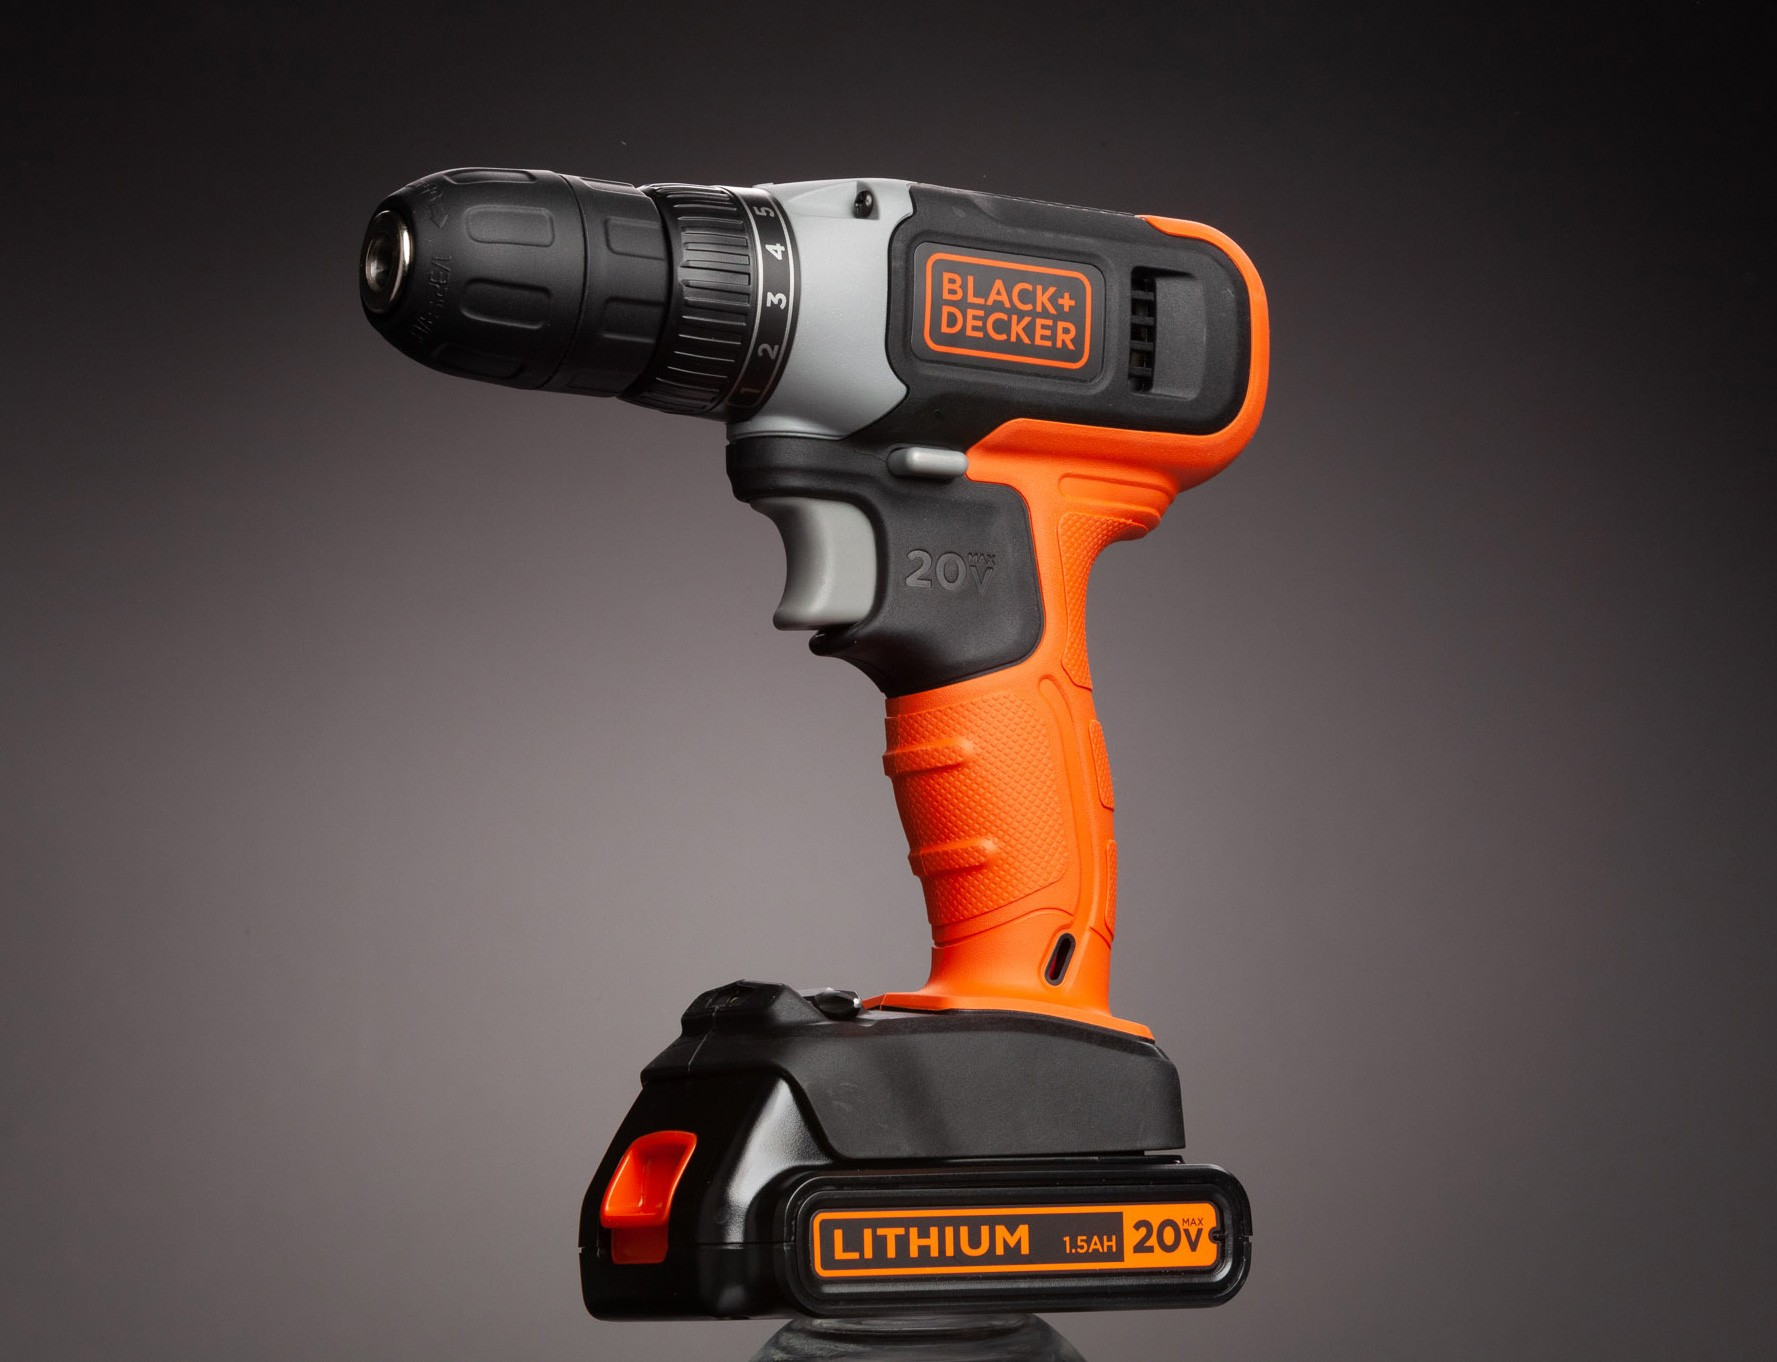 initial shot of black and decker drill